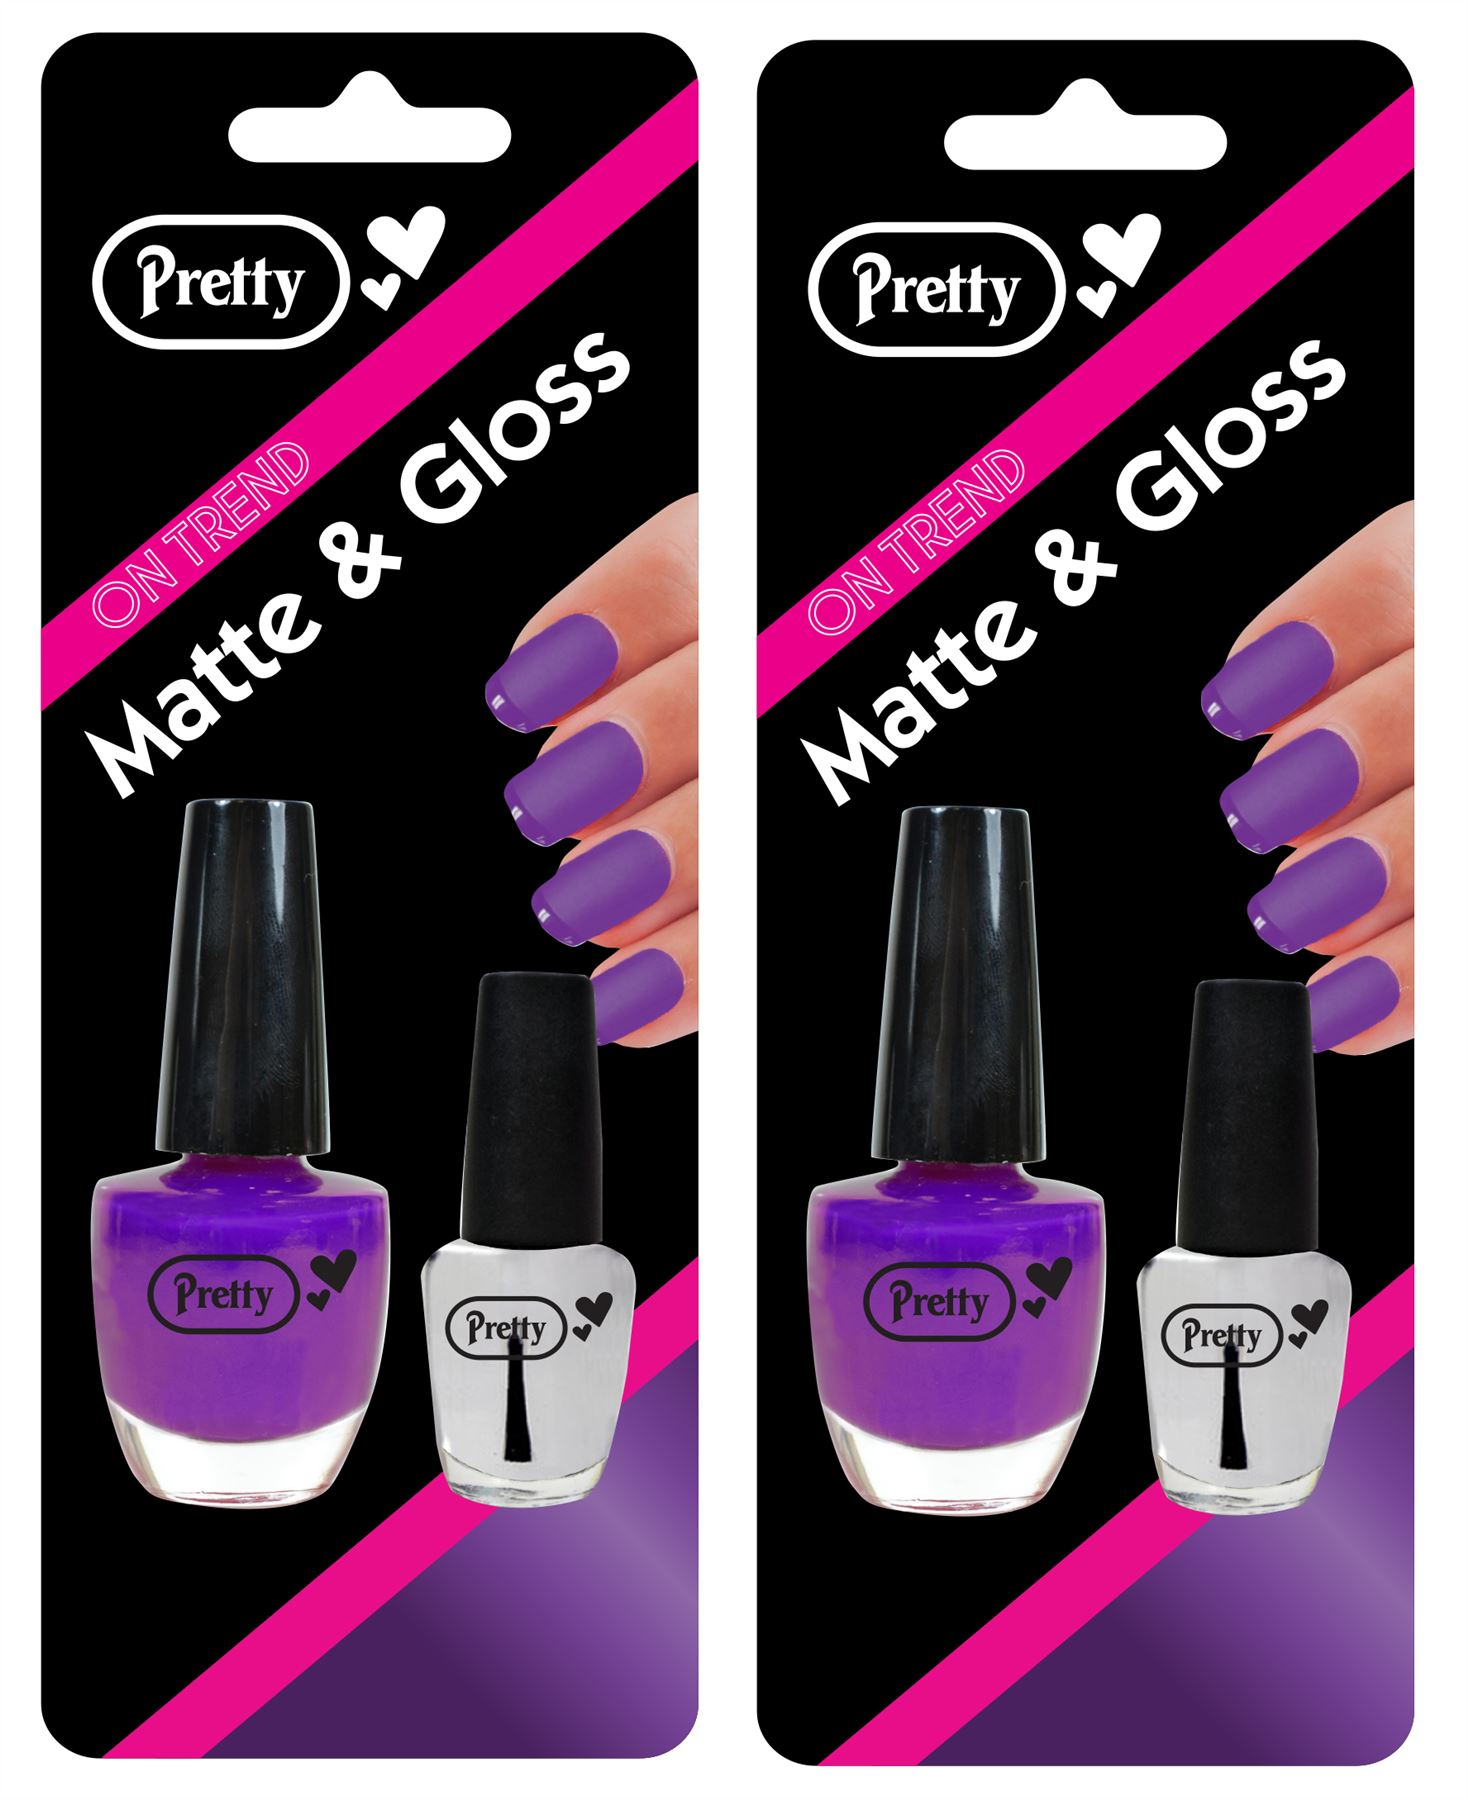 Pretty Nail Varnish Matte & Gloss | 9ml Purple Varnish & 4.5ml Clear Gloss | x2